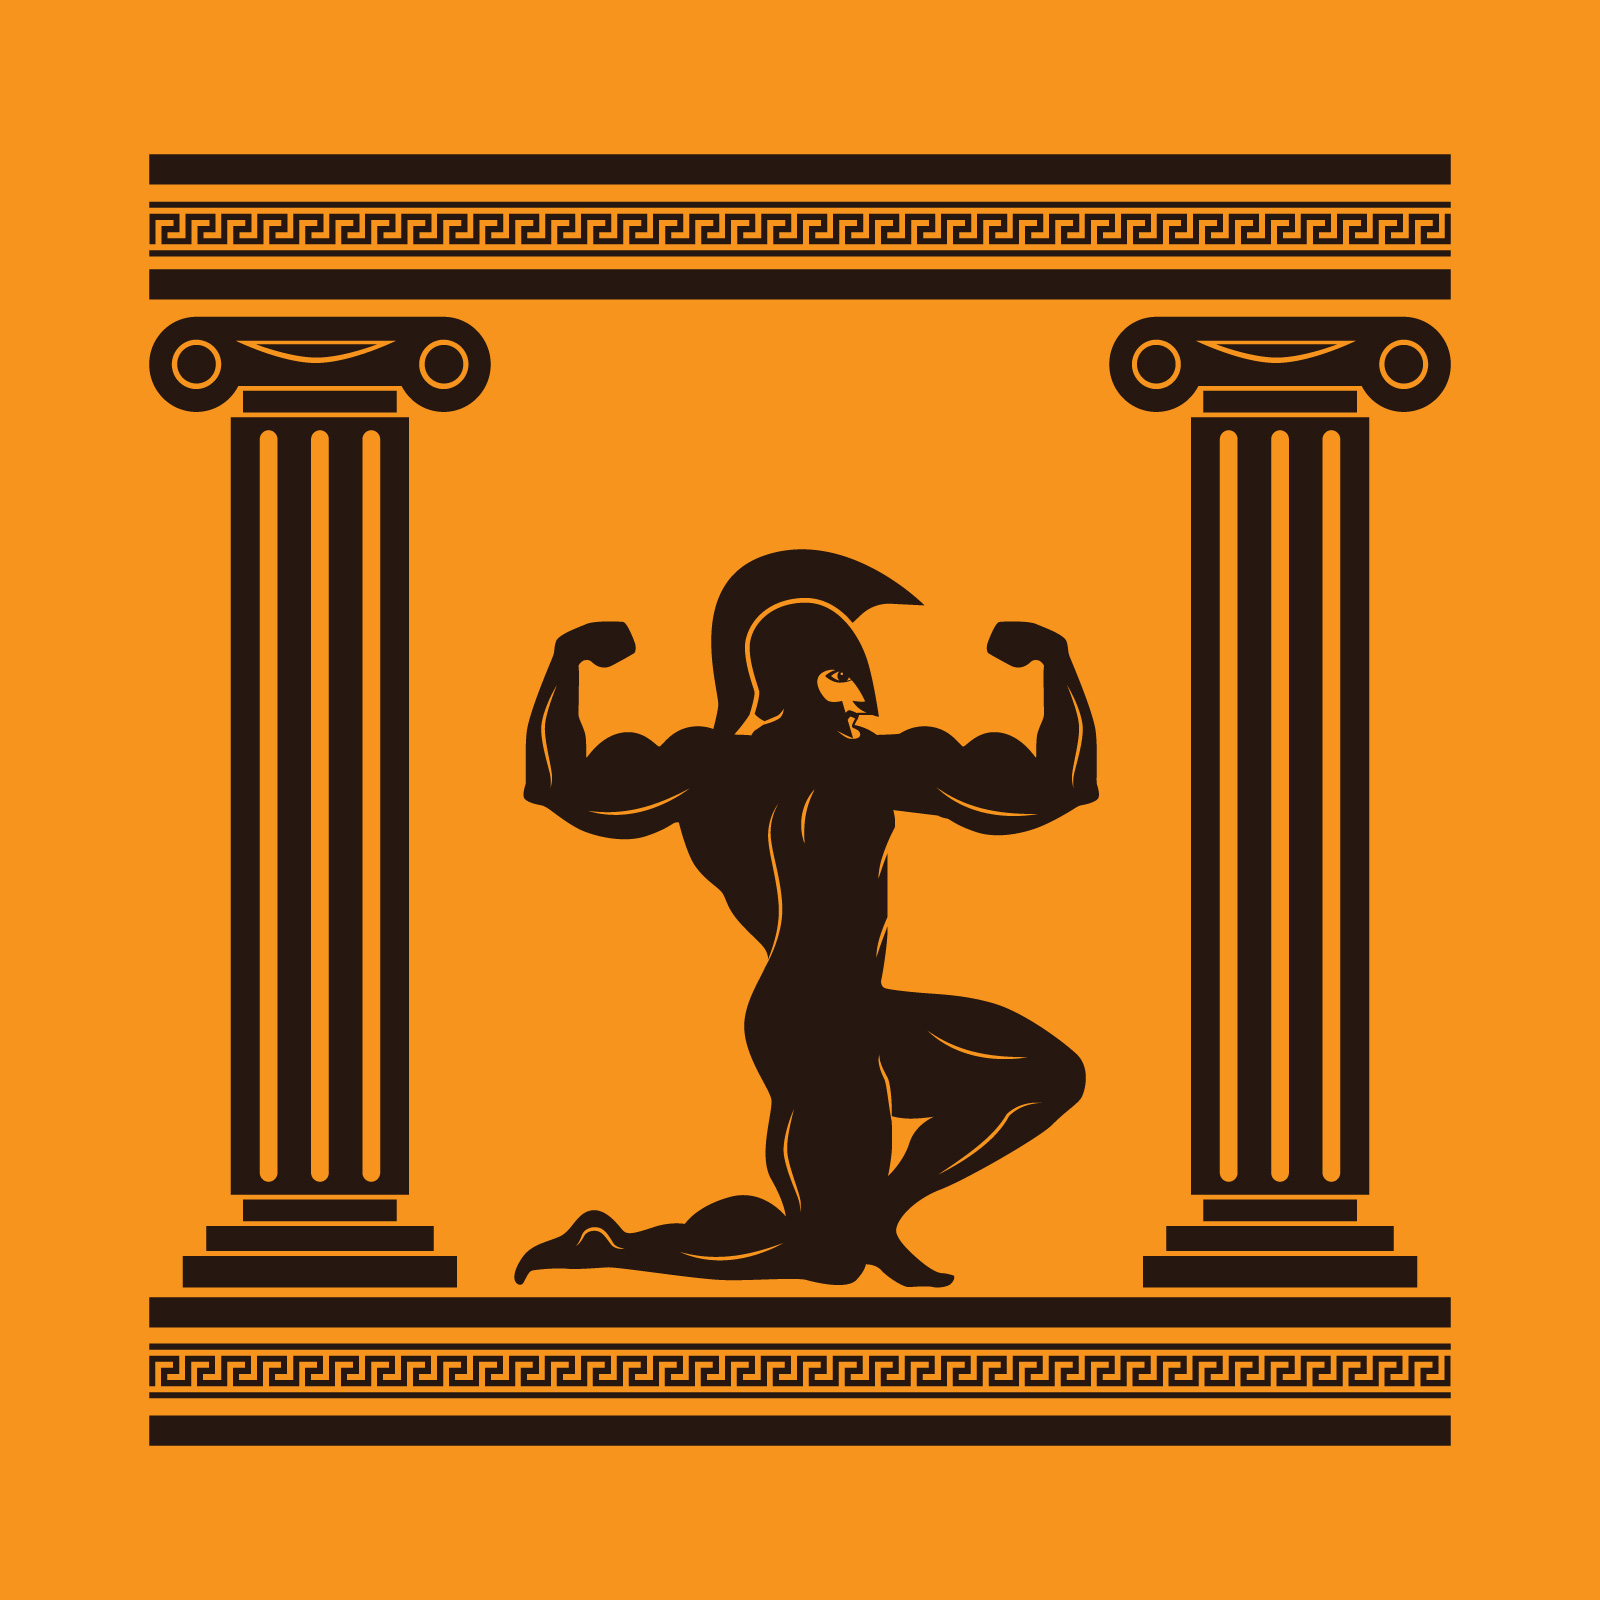 Hercules Mythology Character Illustration  Download Free. Savage Signs Of Stroke. Sincere Signs. Water Droplet Signs. Ihbr Signs Of Stroke. Slang Signs Of Stroke. Negative Energy Signs Of Stroke. Autism Classroom Signs. Good Behavior Signs